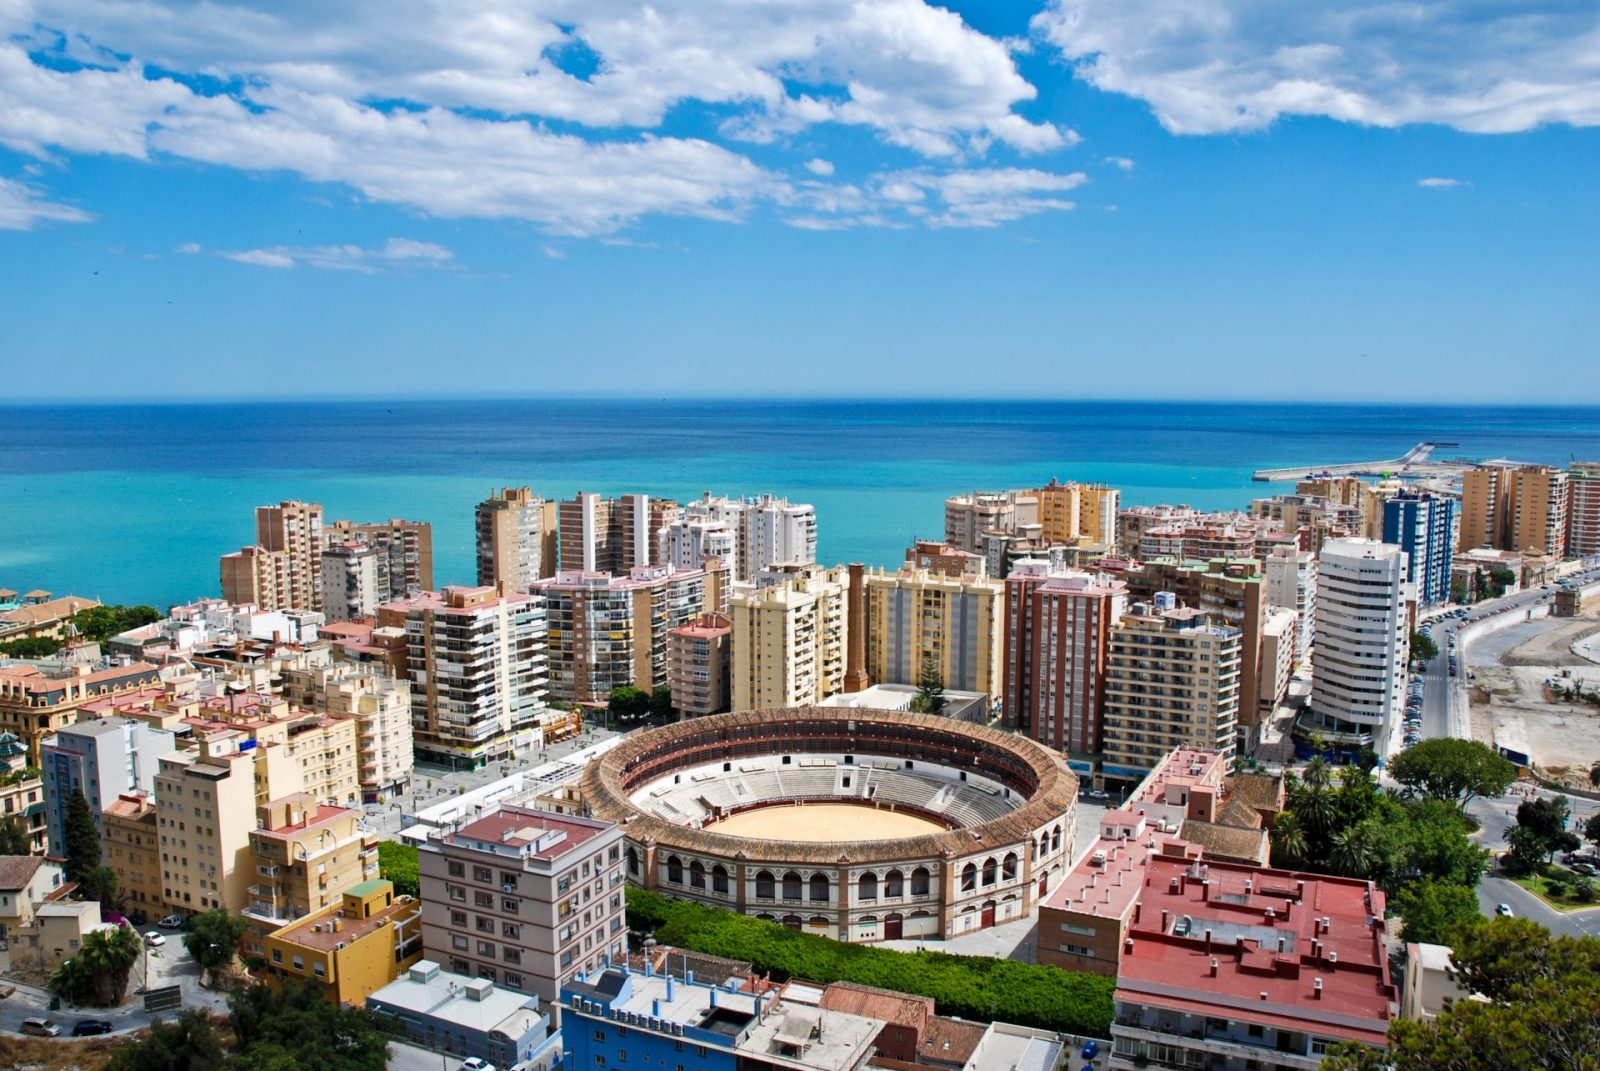 Malaga Weekend Guide: What to See and Do